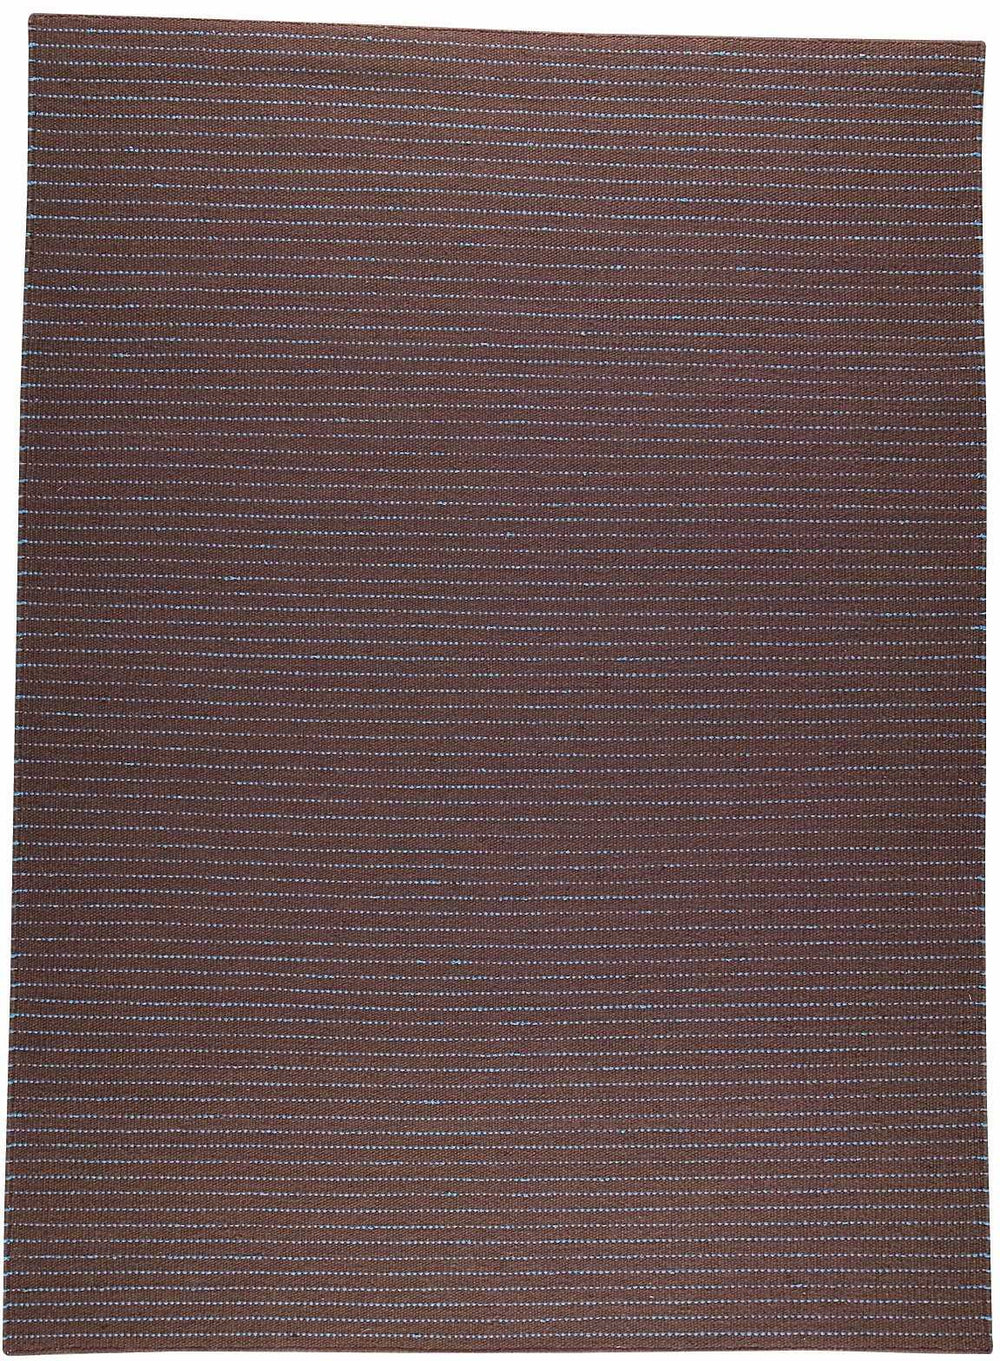 MAT The Basics 10W Margarita Area Rug